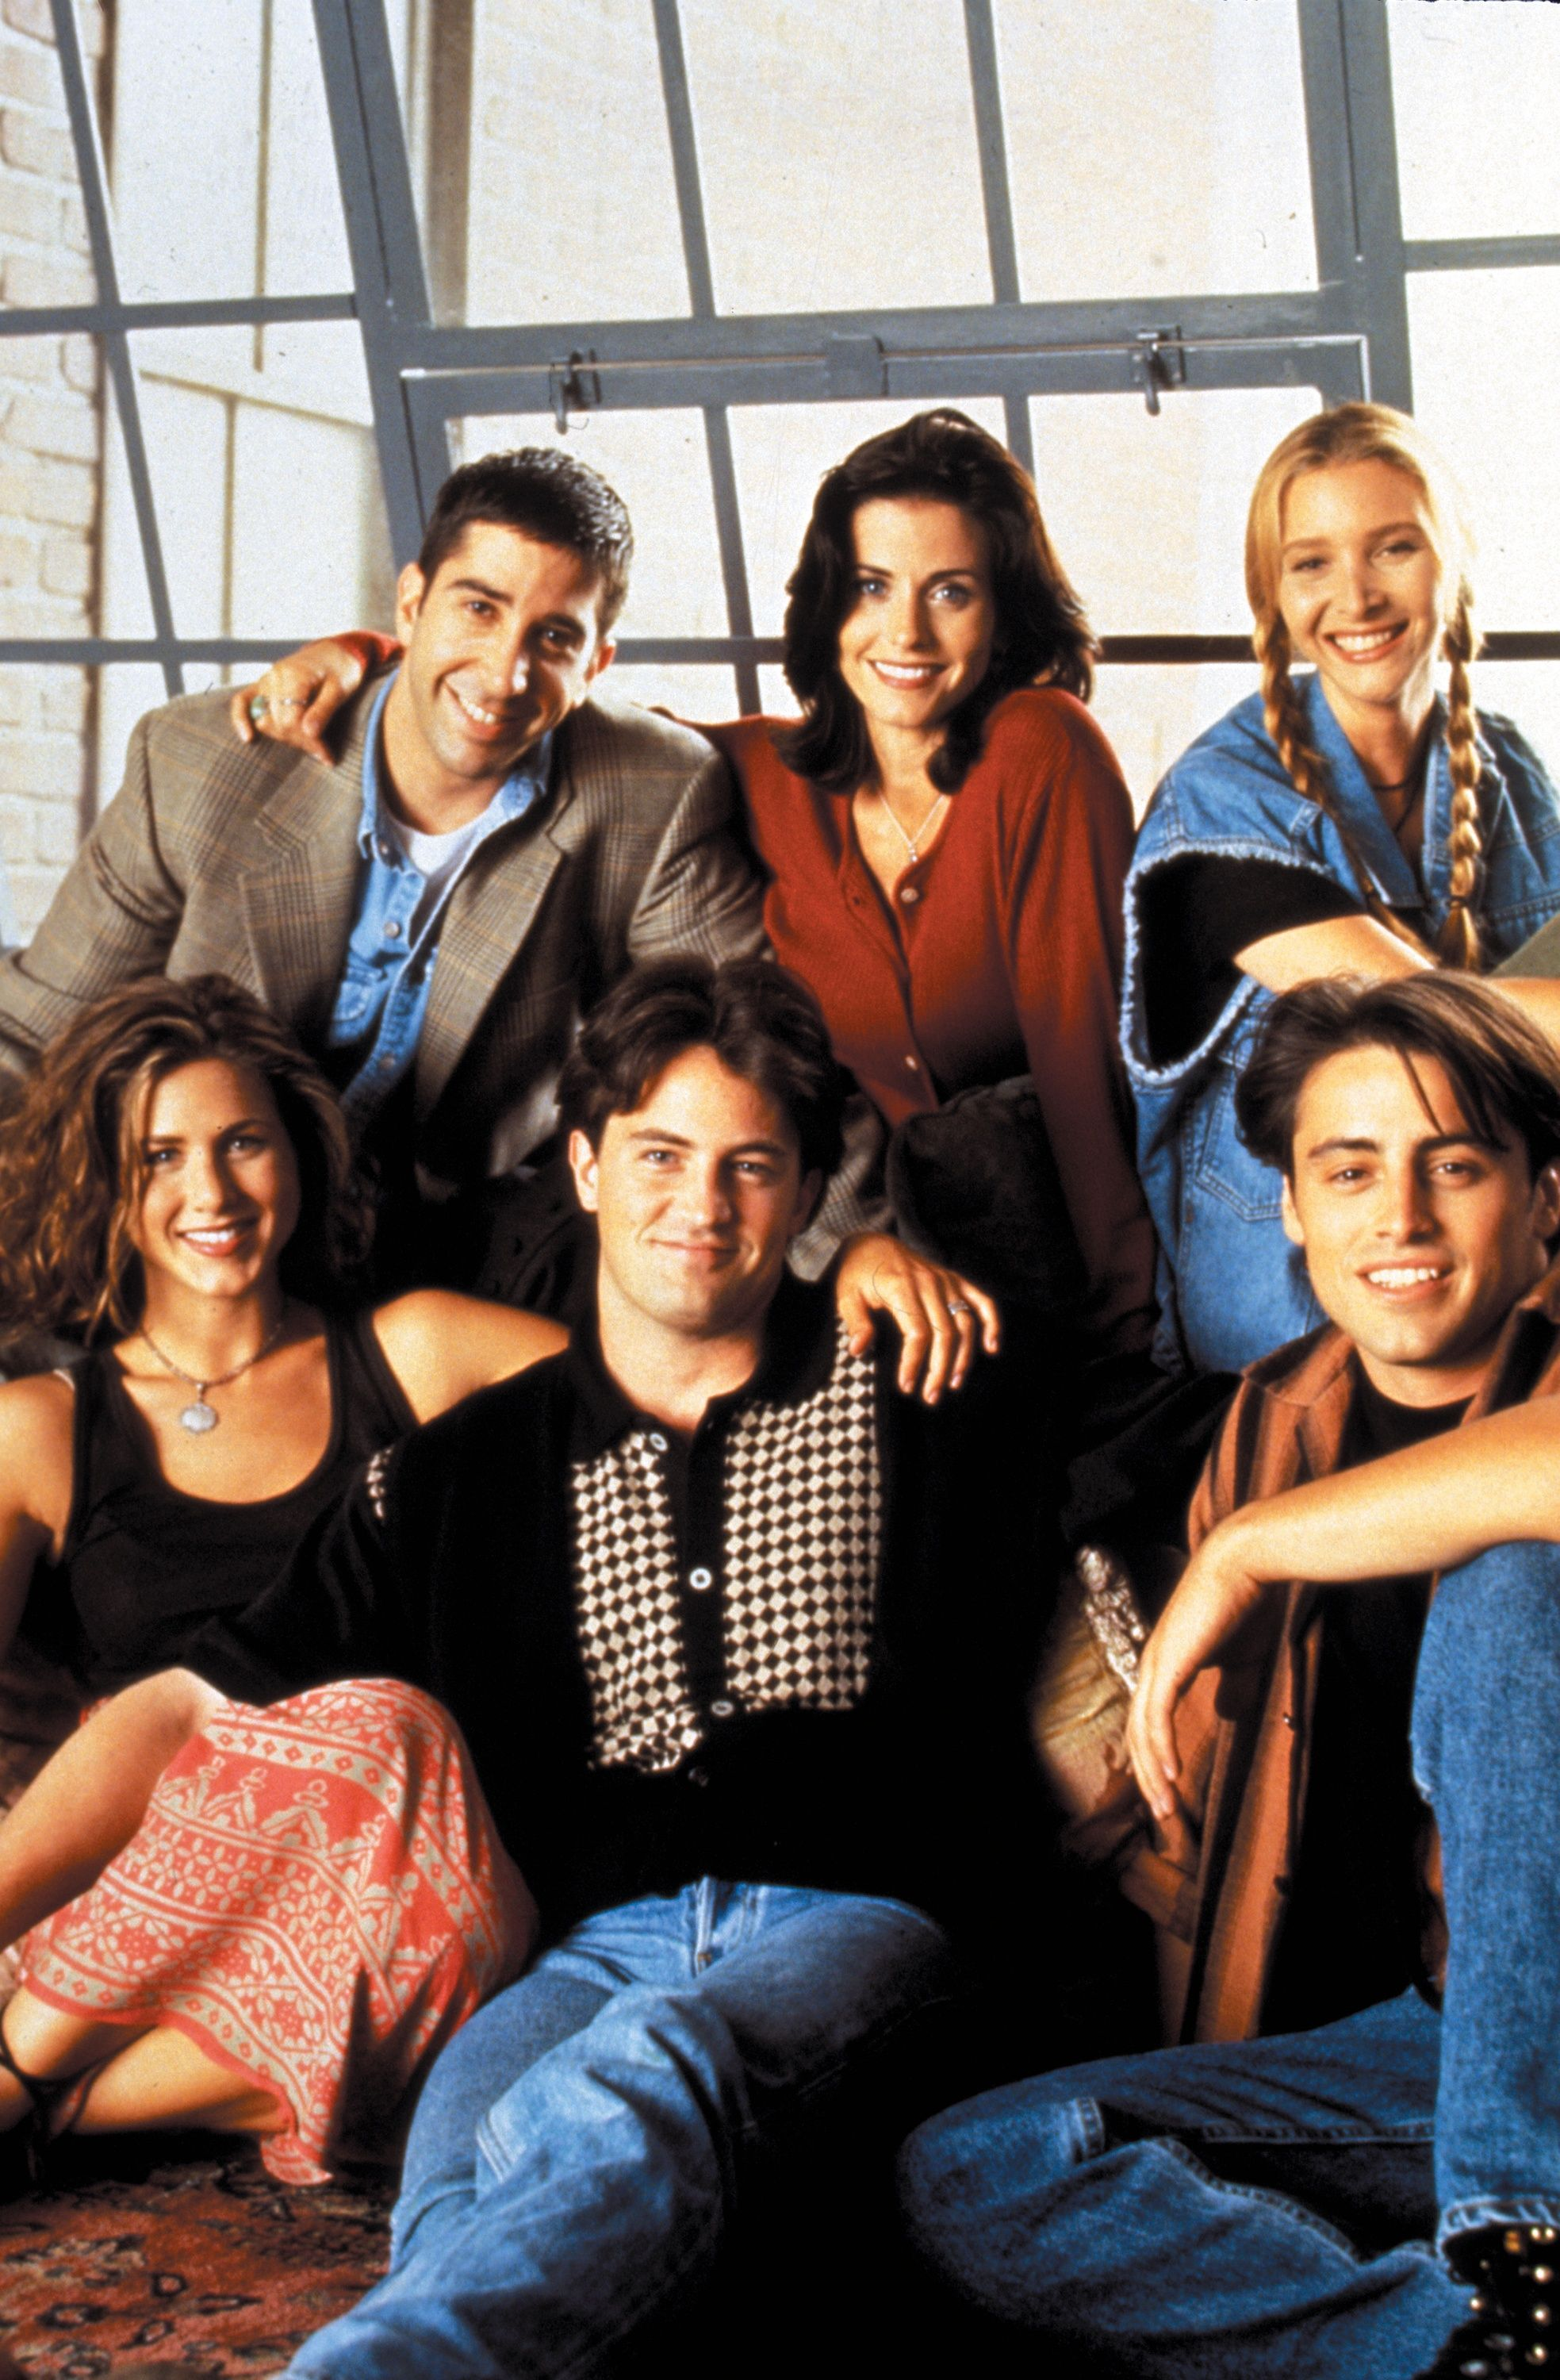 Friends S1 Cast Promotional Photo | Archived TV Show